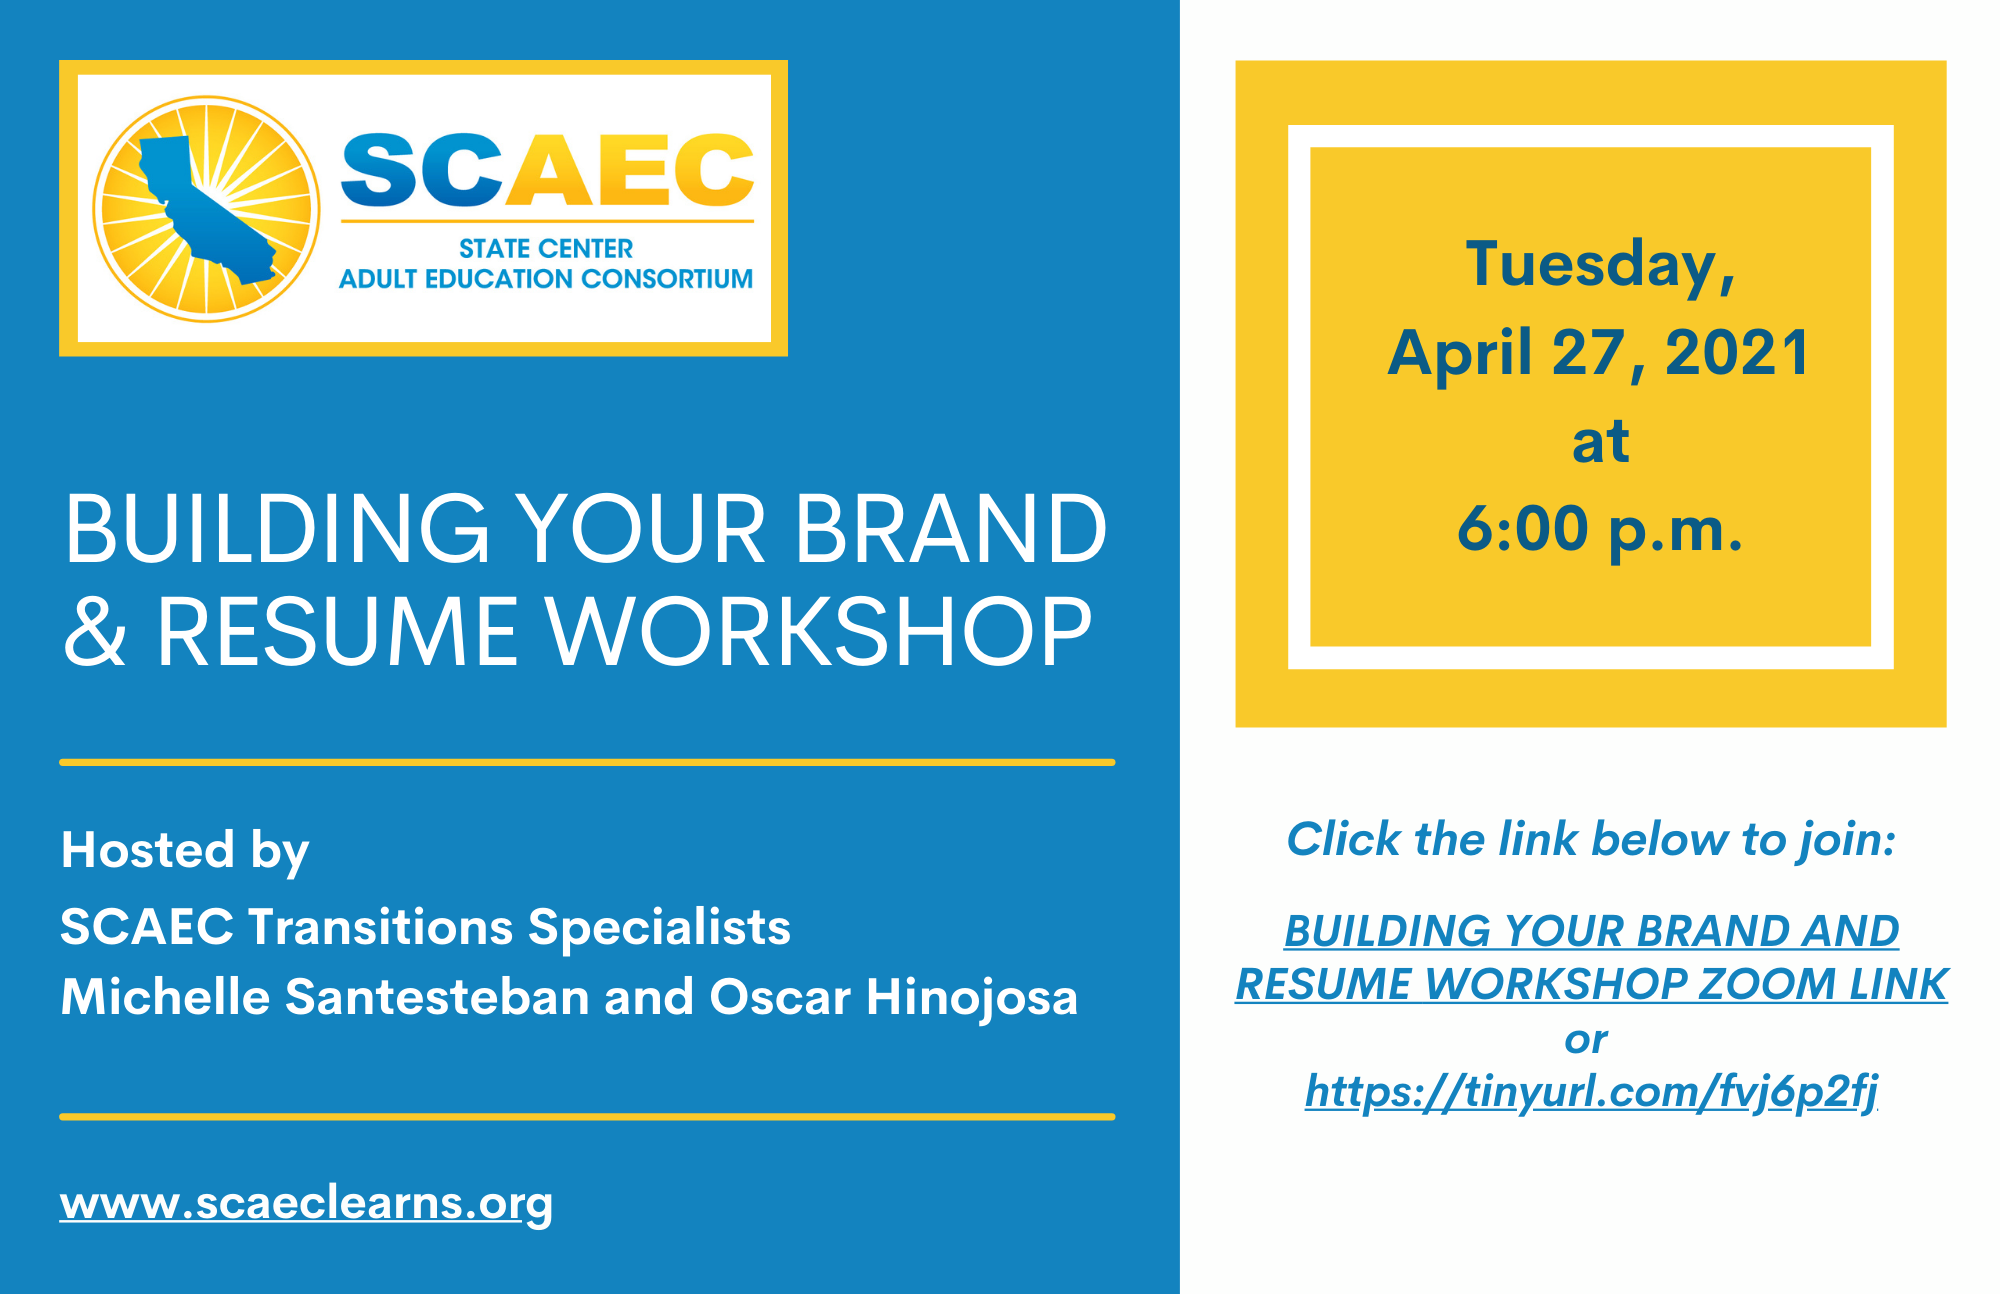 Build your Brand and Resume Workshop - Evening